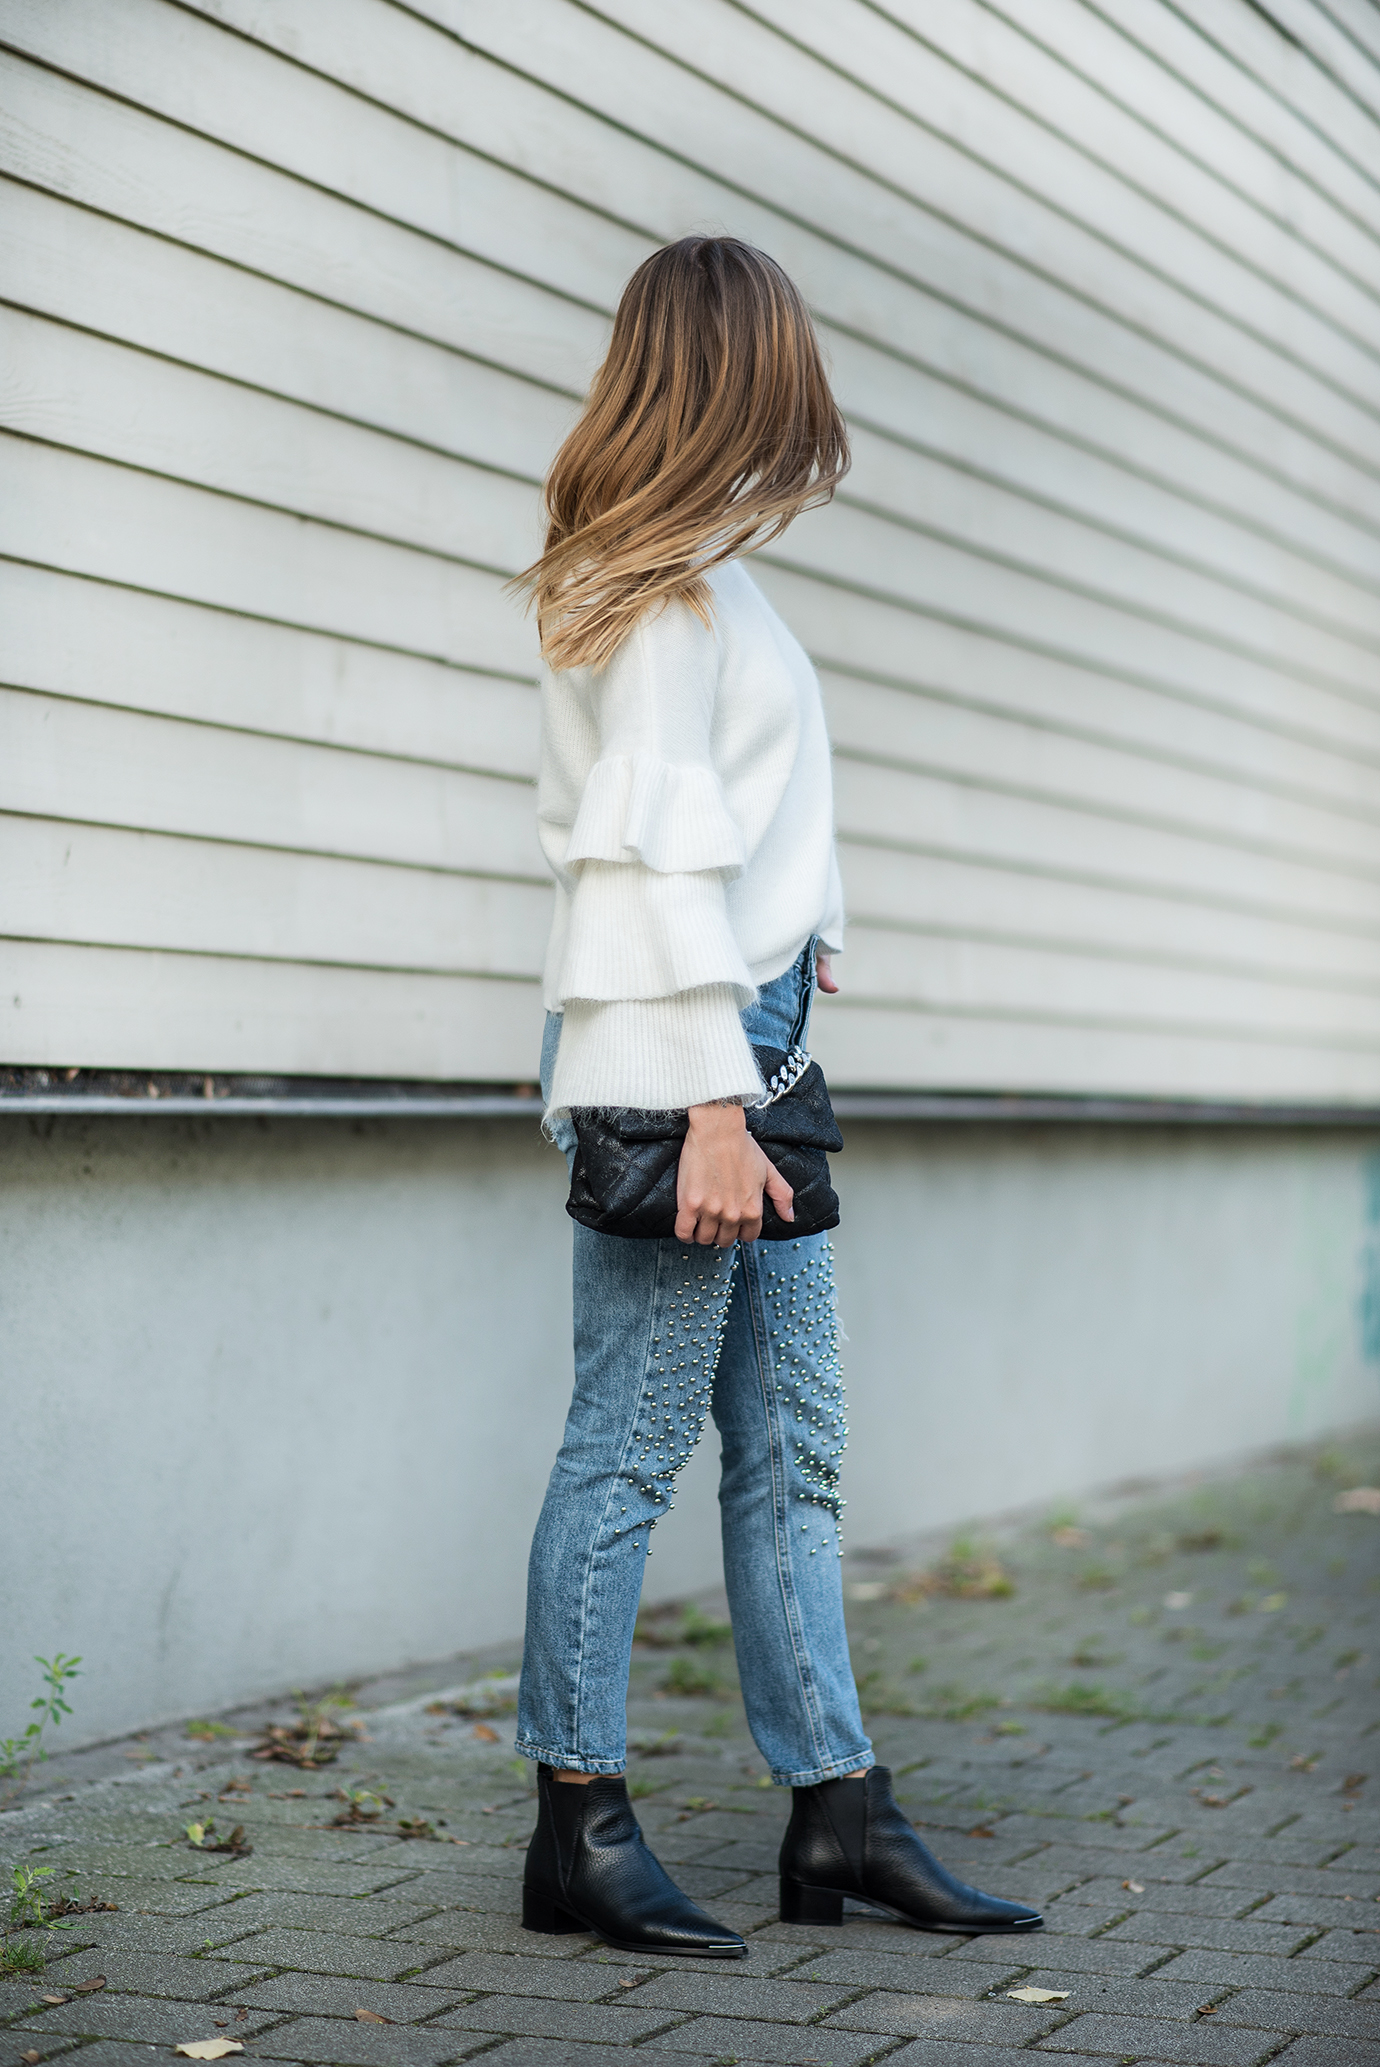 denim_girl_outfit_hoard_of_trends_6